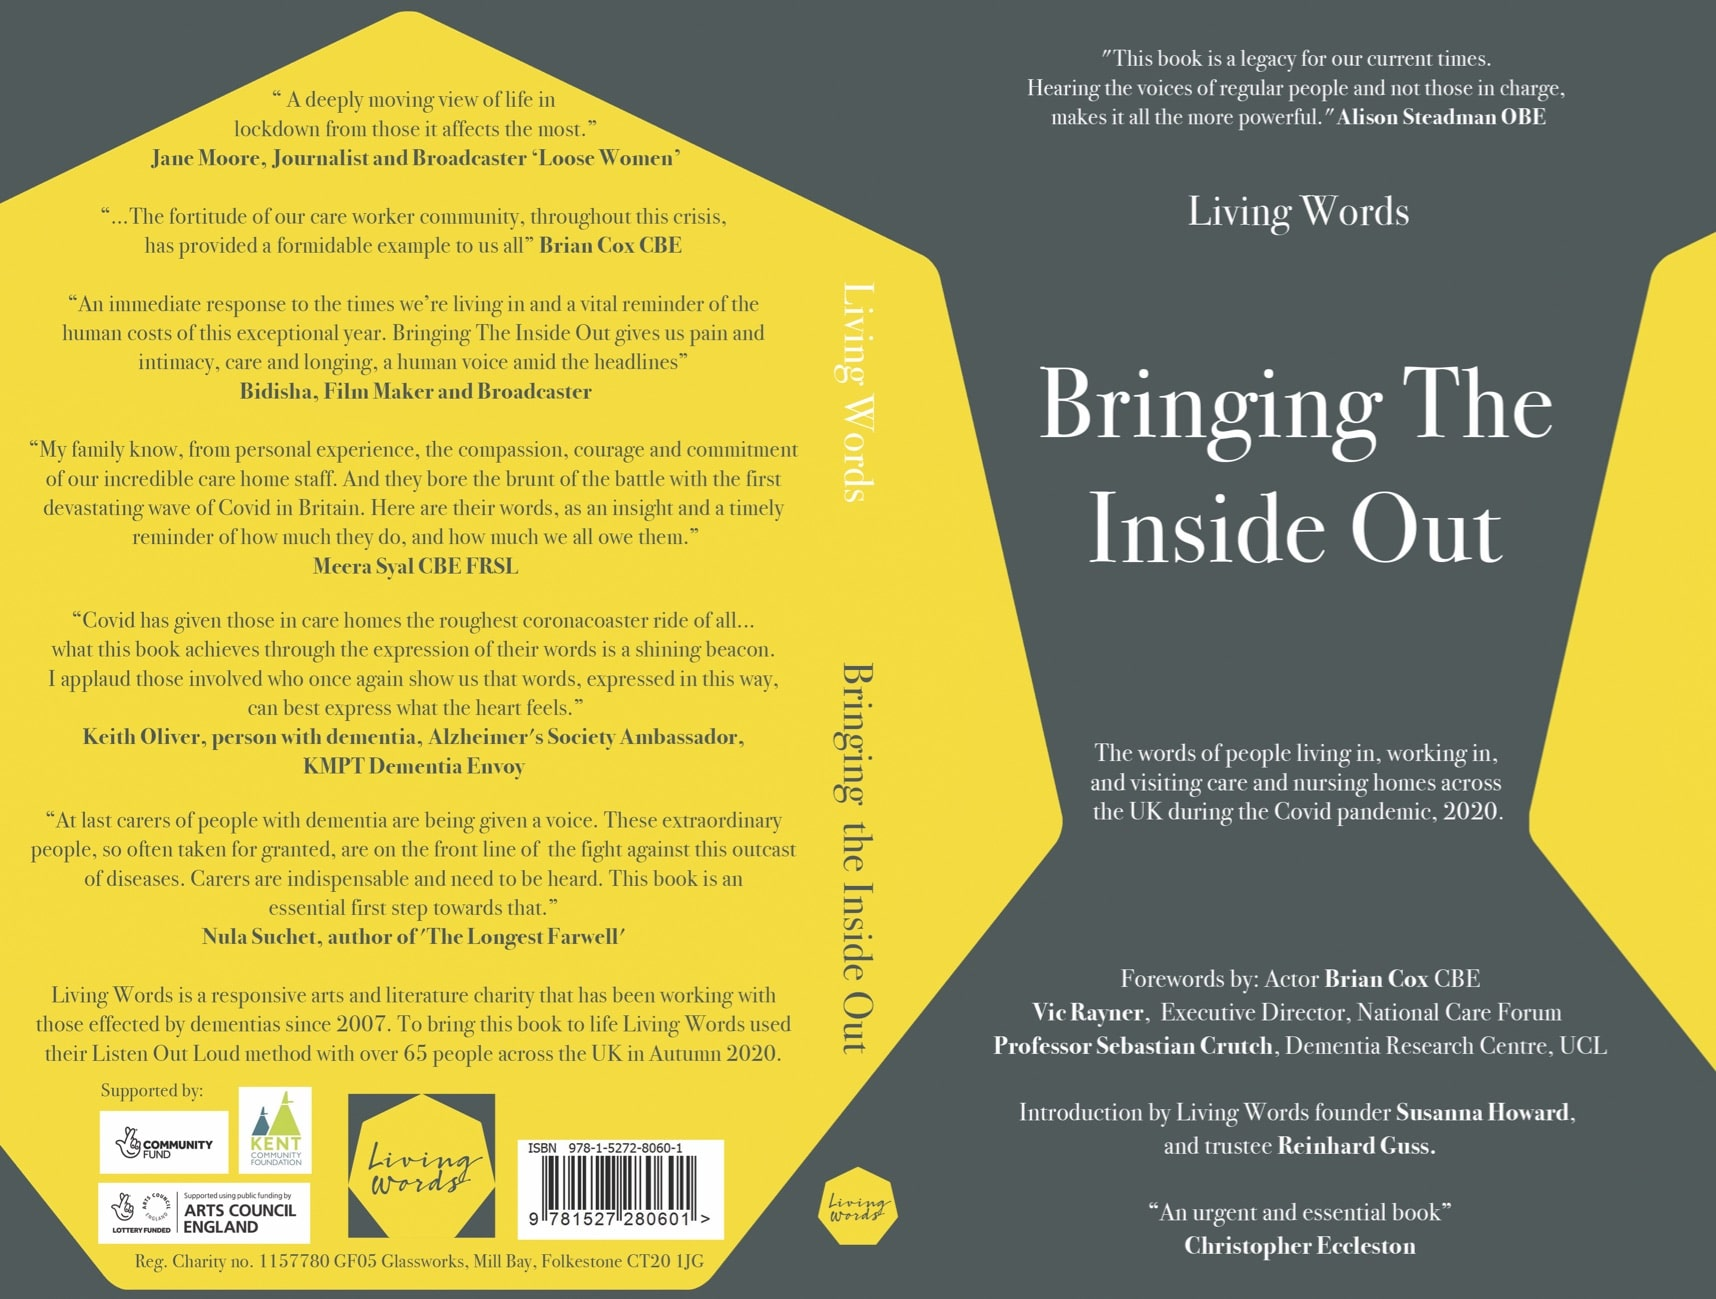 BRINGING THE INSIDE OUT COVER FINAL LIVING WORDS HIGH RES (1)